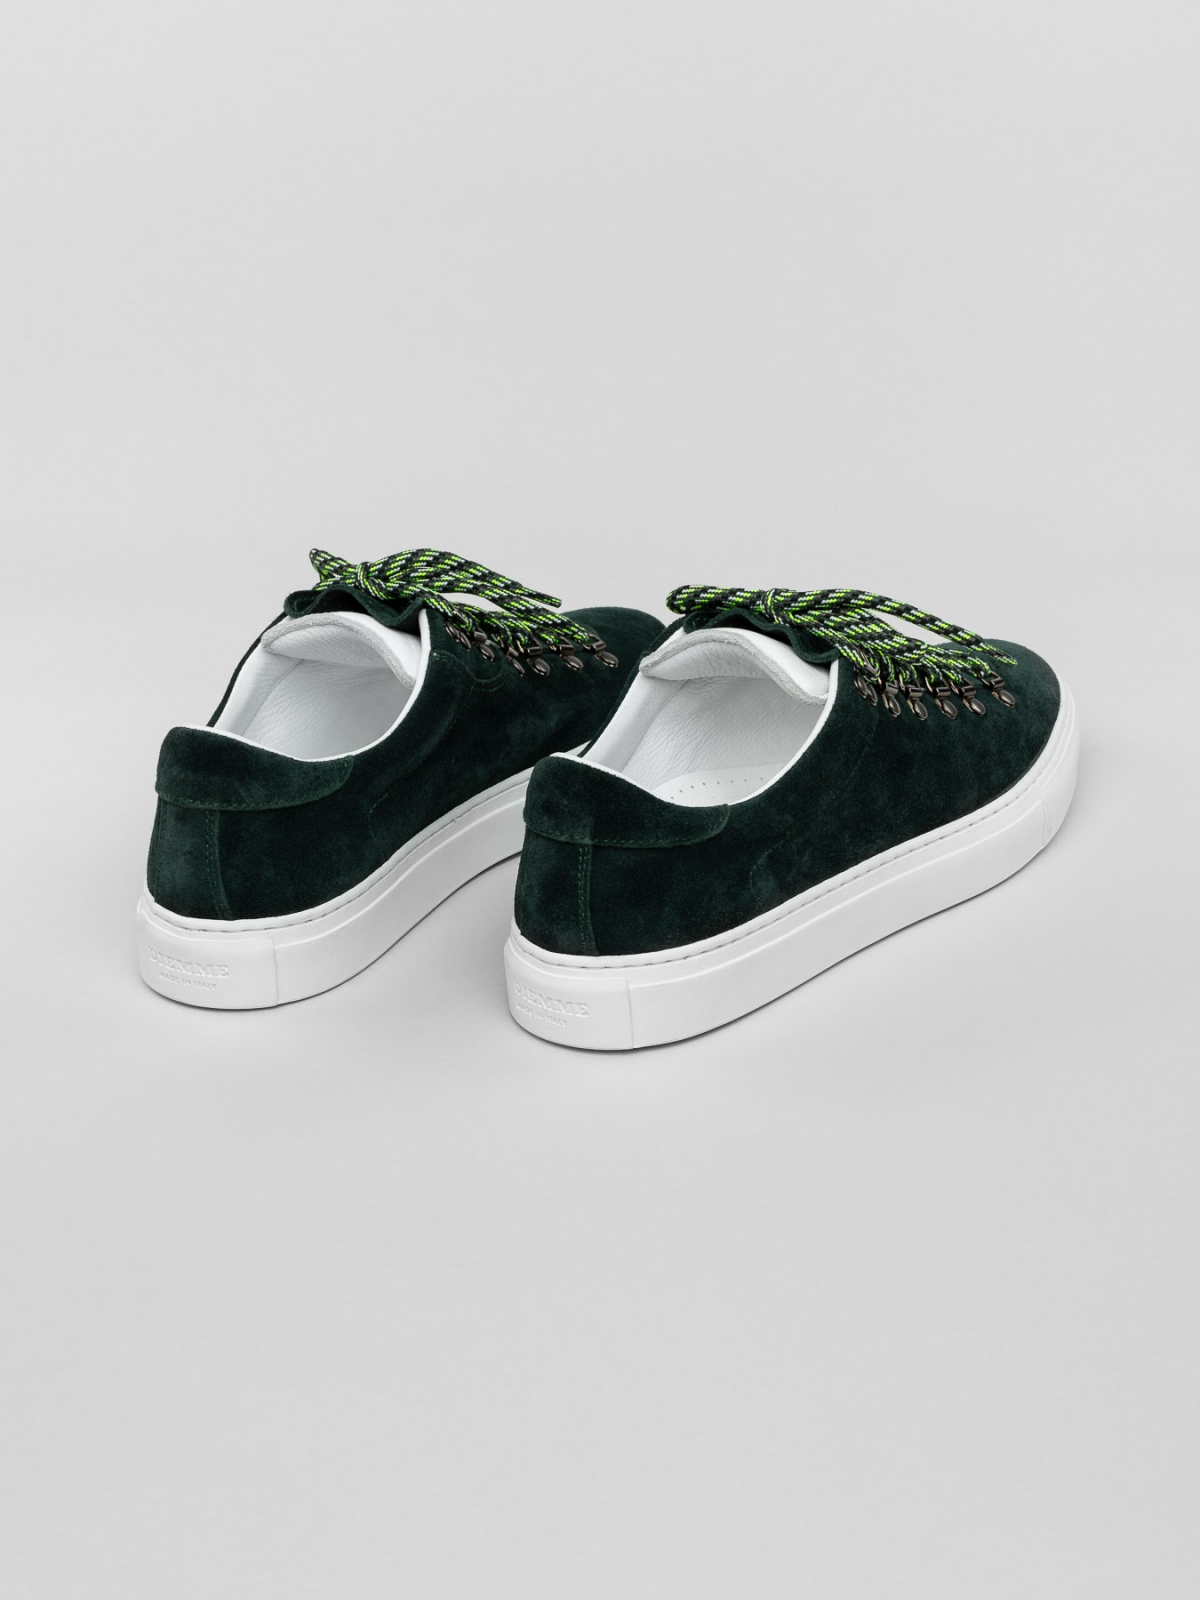 Diemme Marostica Low Dark Green Sneaker